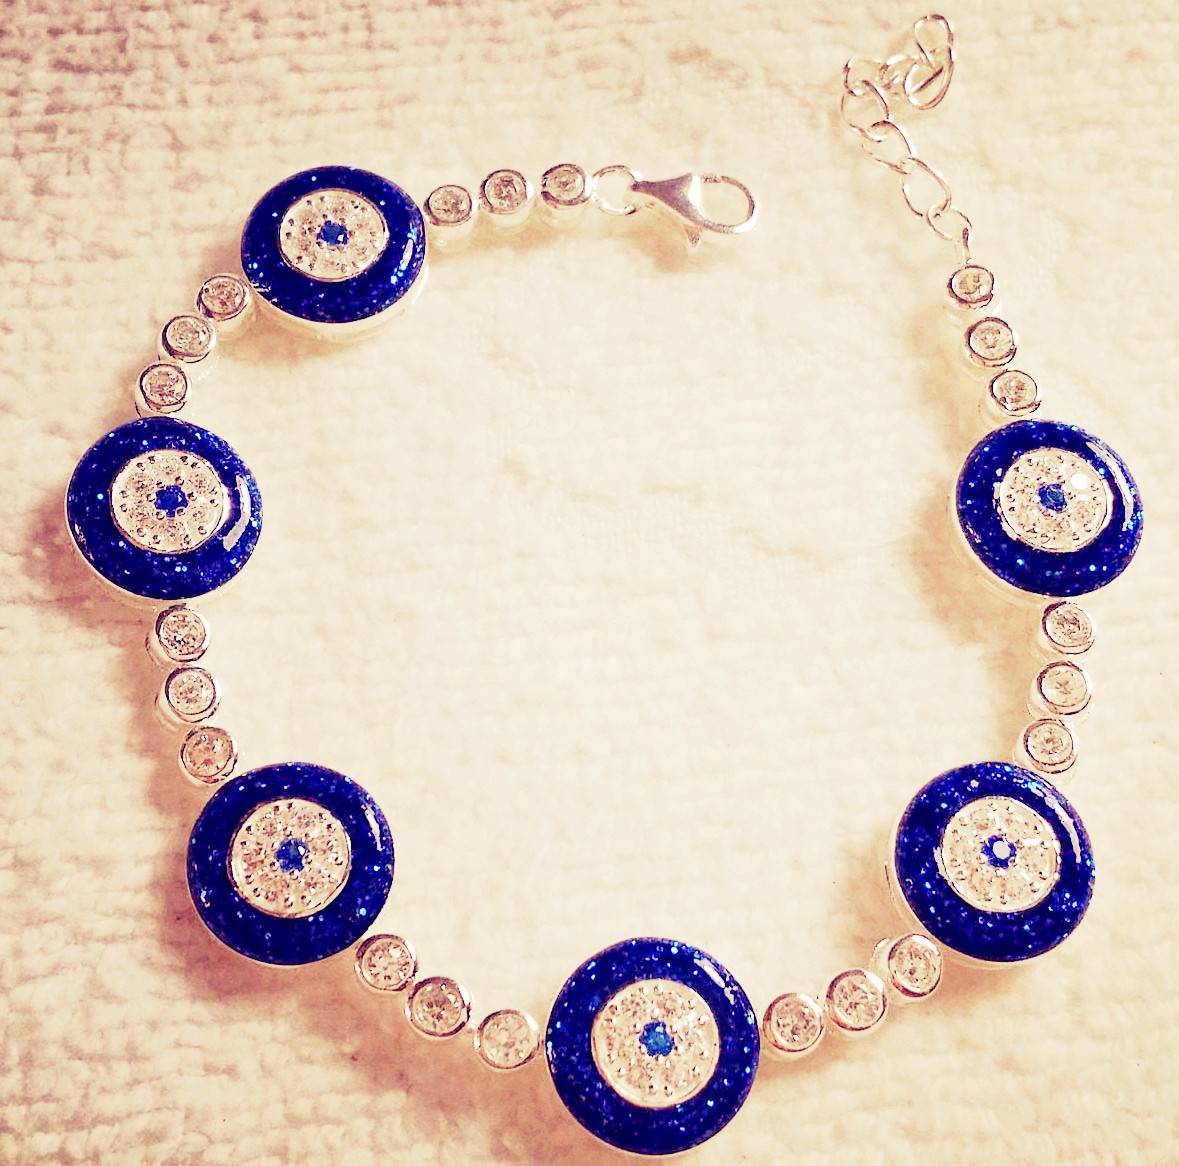 blue shiny evil eye tennis bracelet